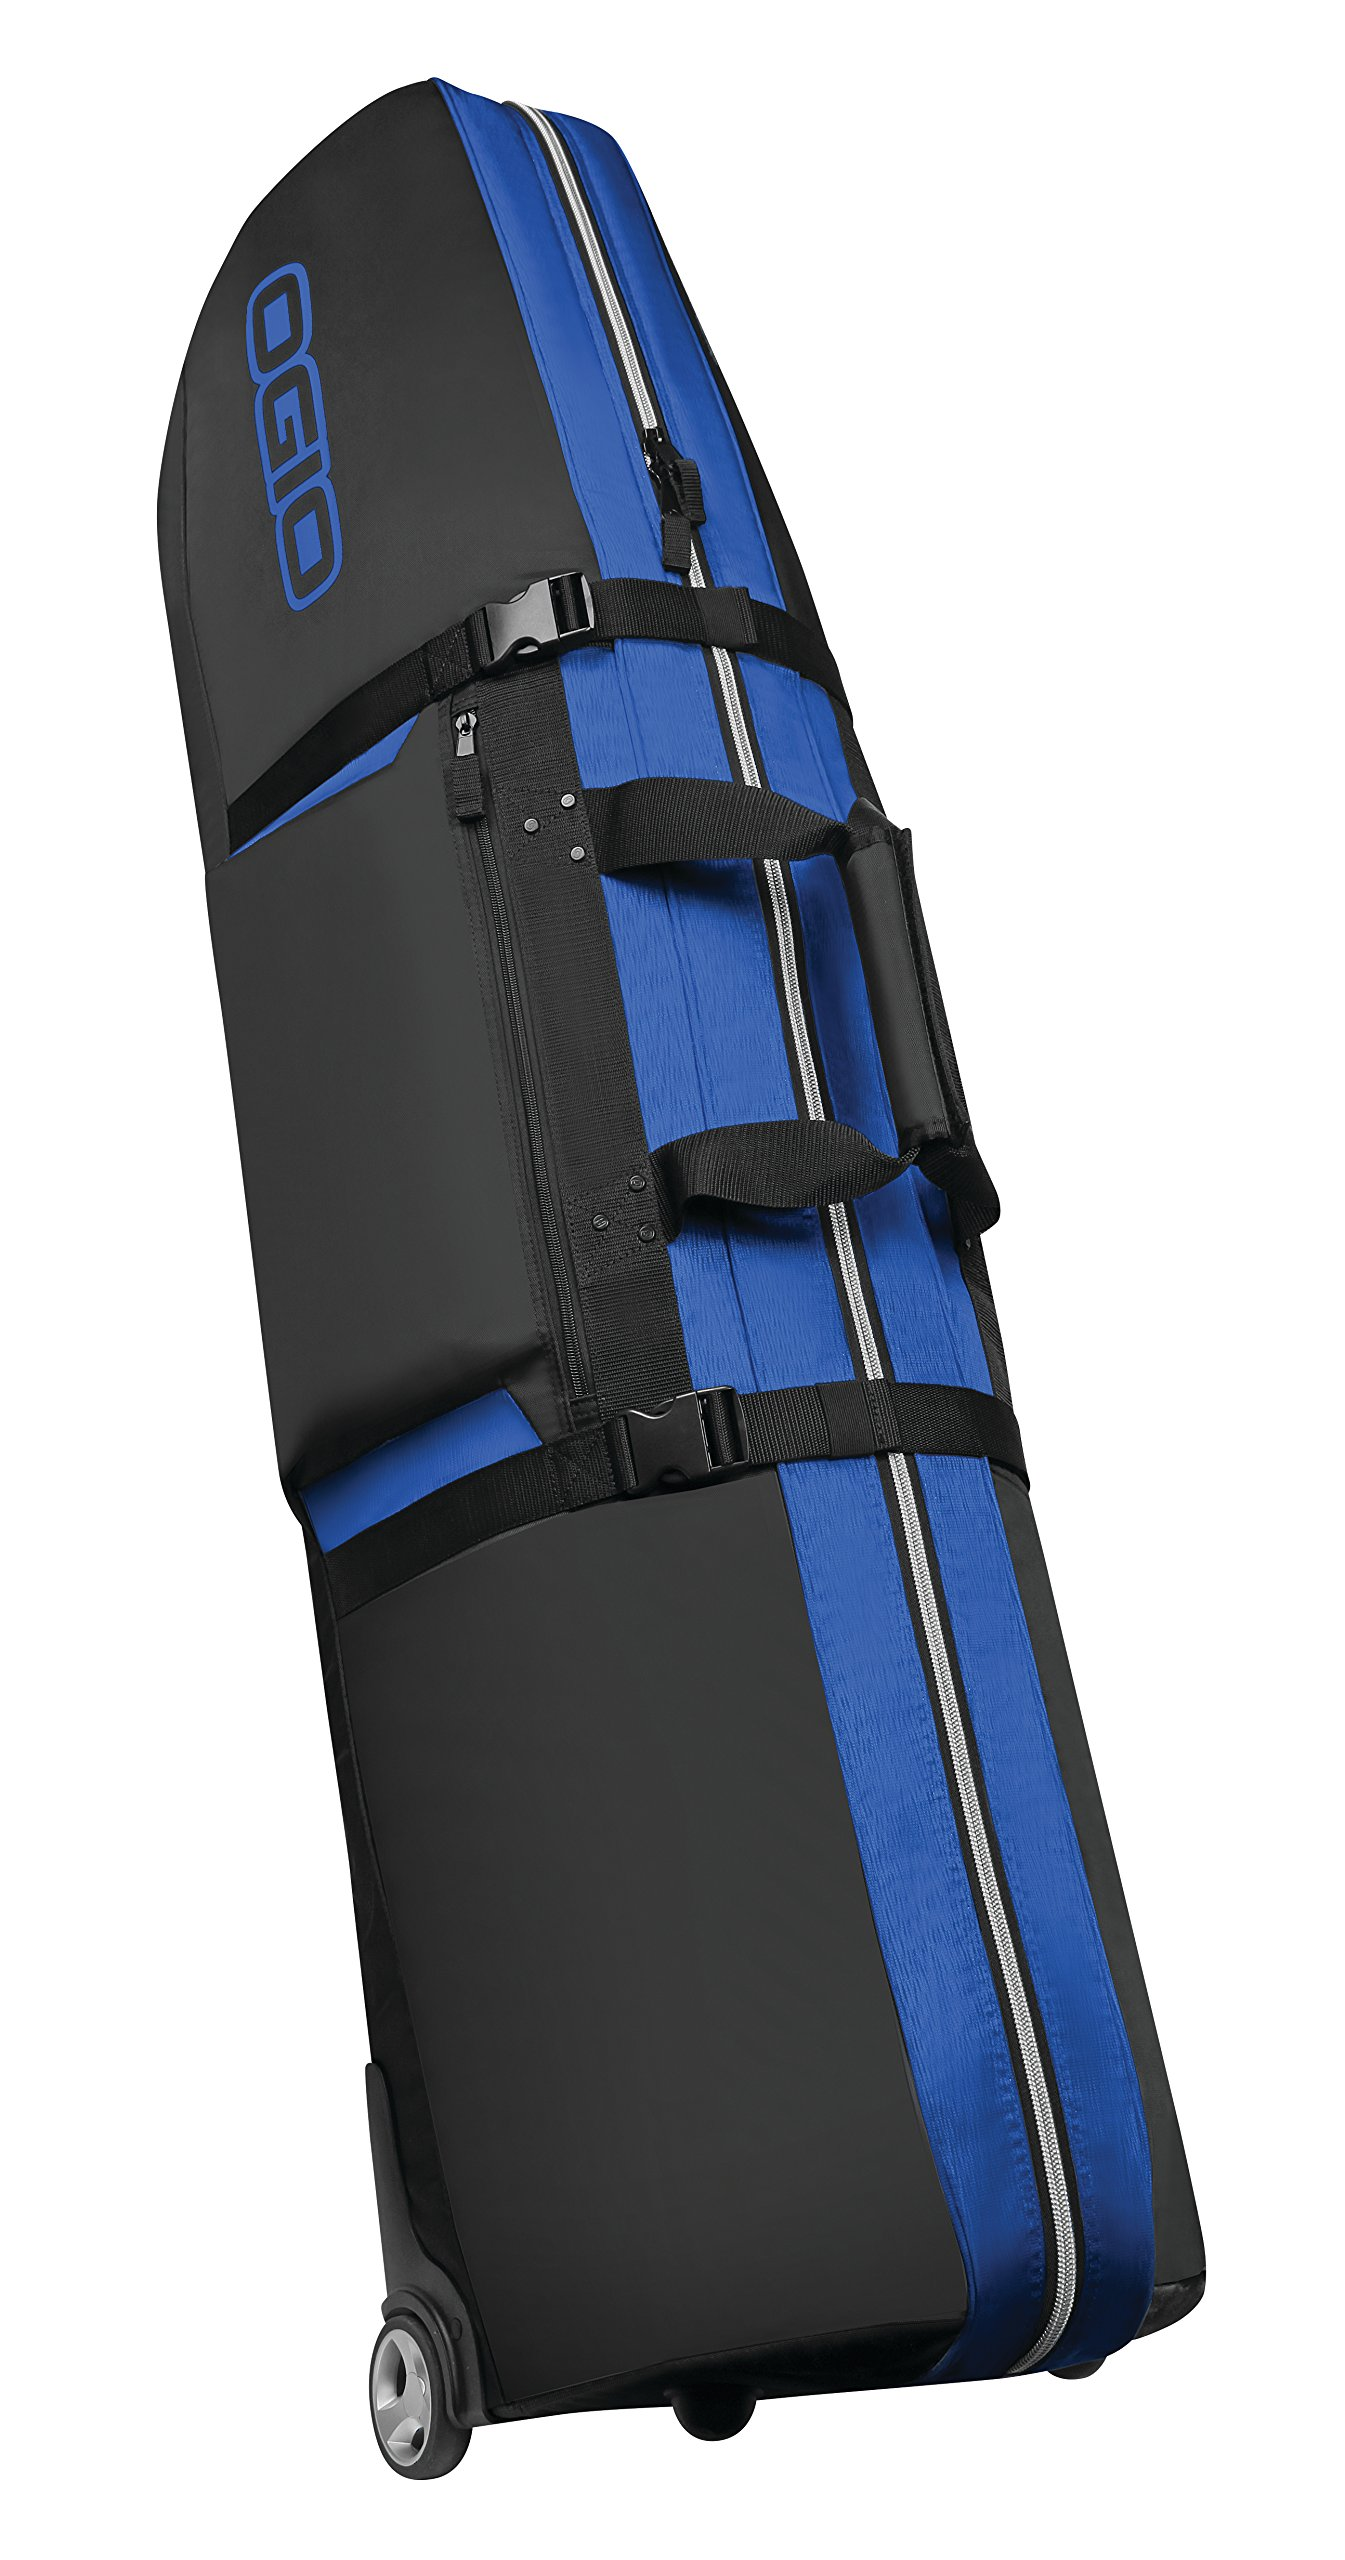 OGIO 2018 Straight Jacket Travel Cover, Blue Jungle by OGIO